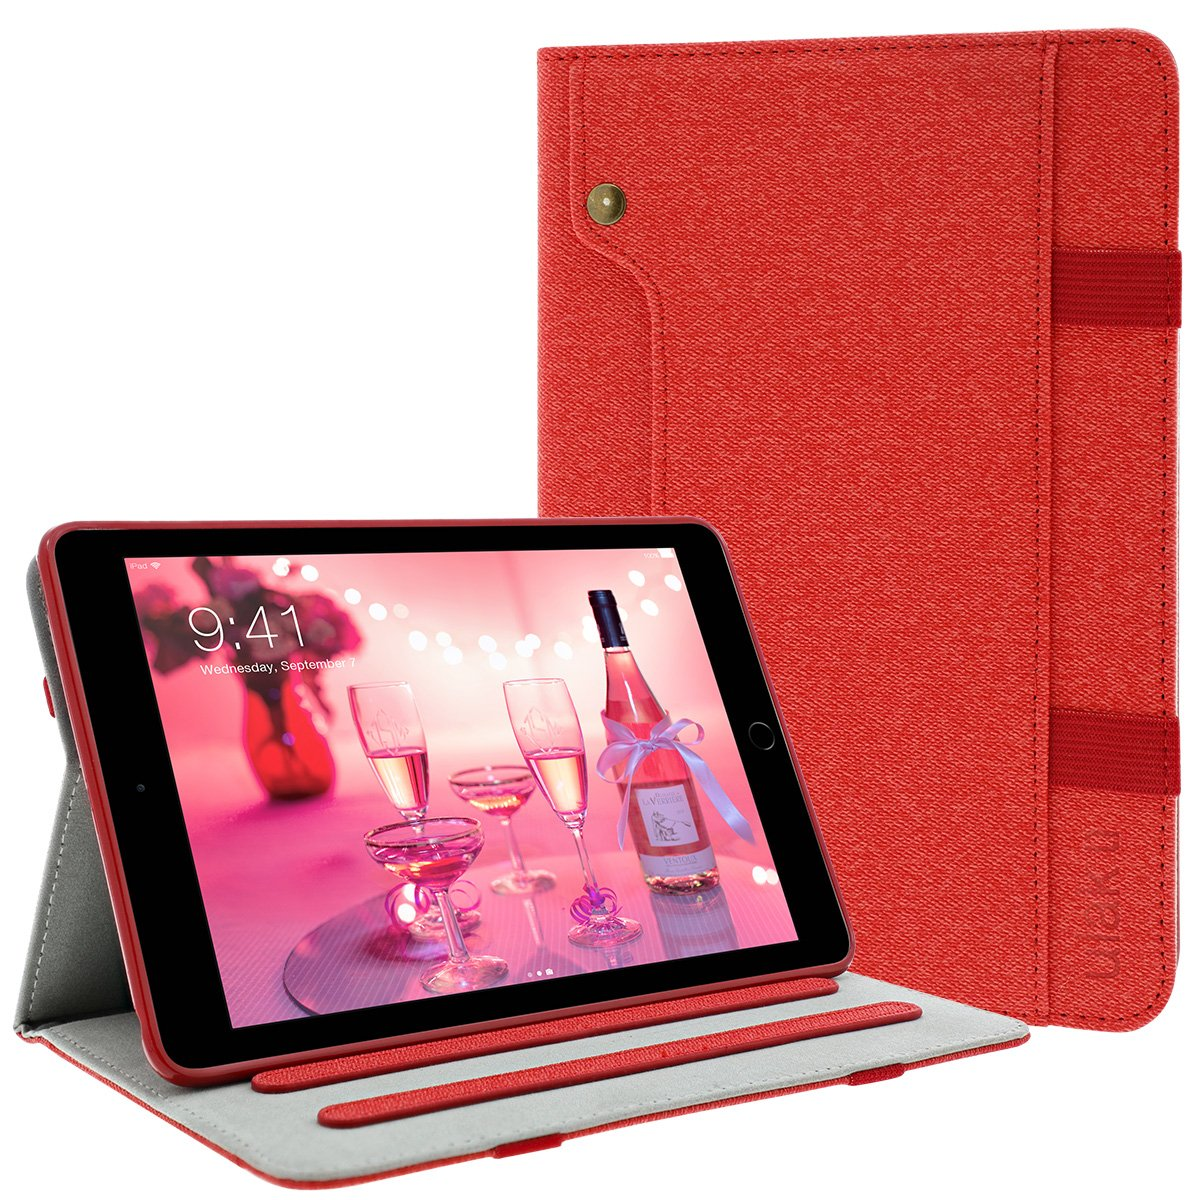 360 Degree Rotating Folio Synthetic Leather Stand Case Slim Fit Smart Cover with Auto Sleep//Wake Feature for Apple New iPad 9.7 2018//2017 Negro ULAK New iPad 9.7 2017 Case iPad 9.7 2018 Case